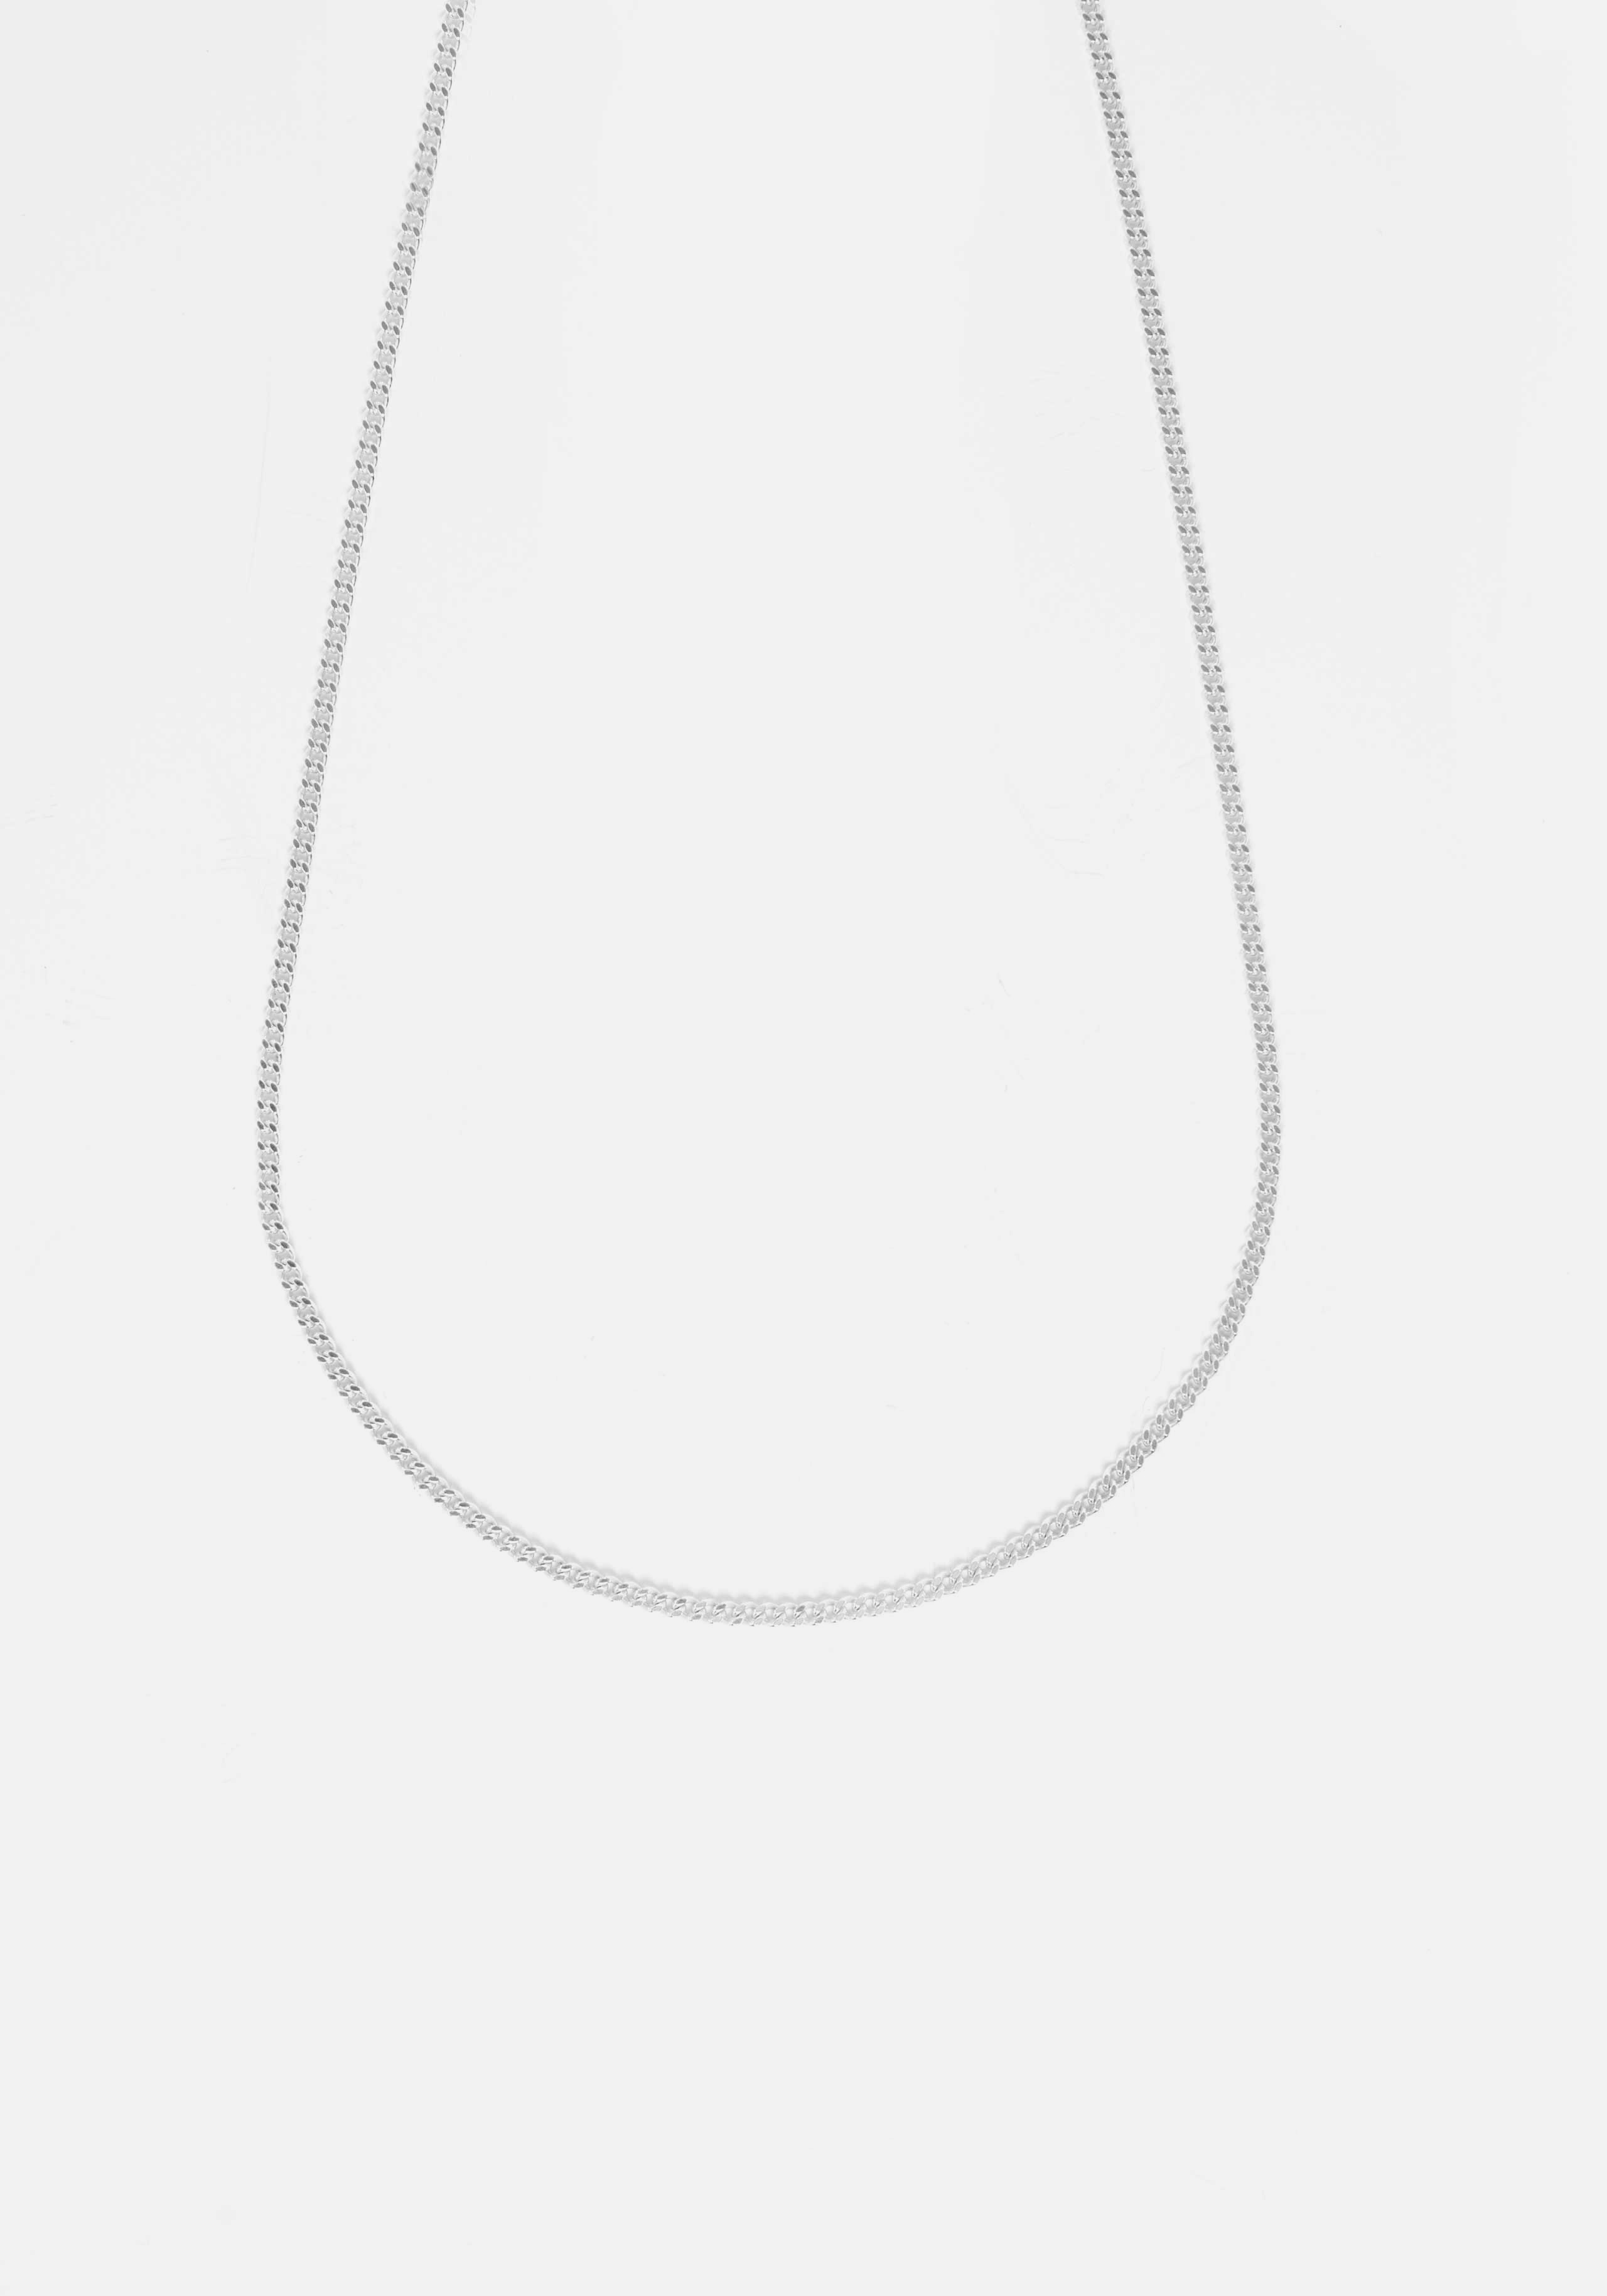 mki curb necklace 1